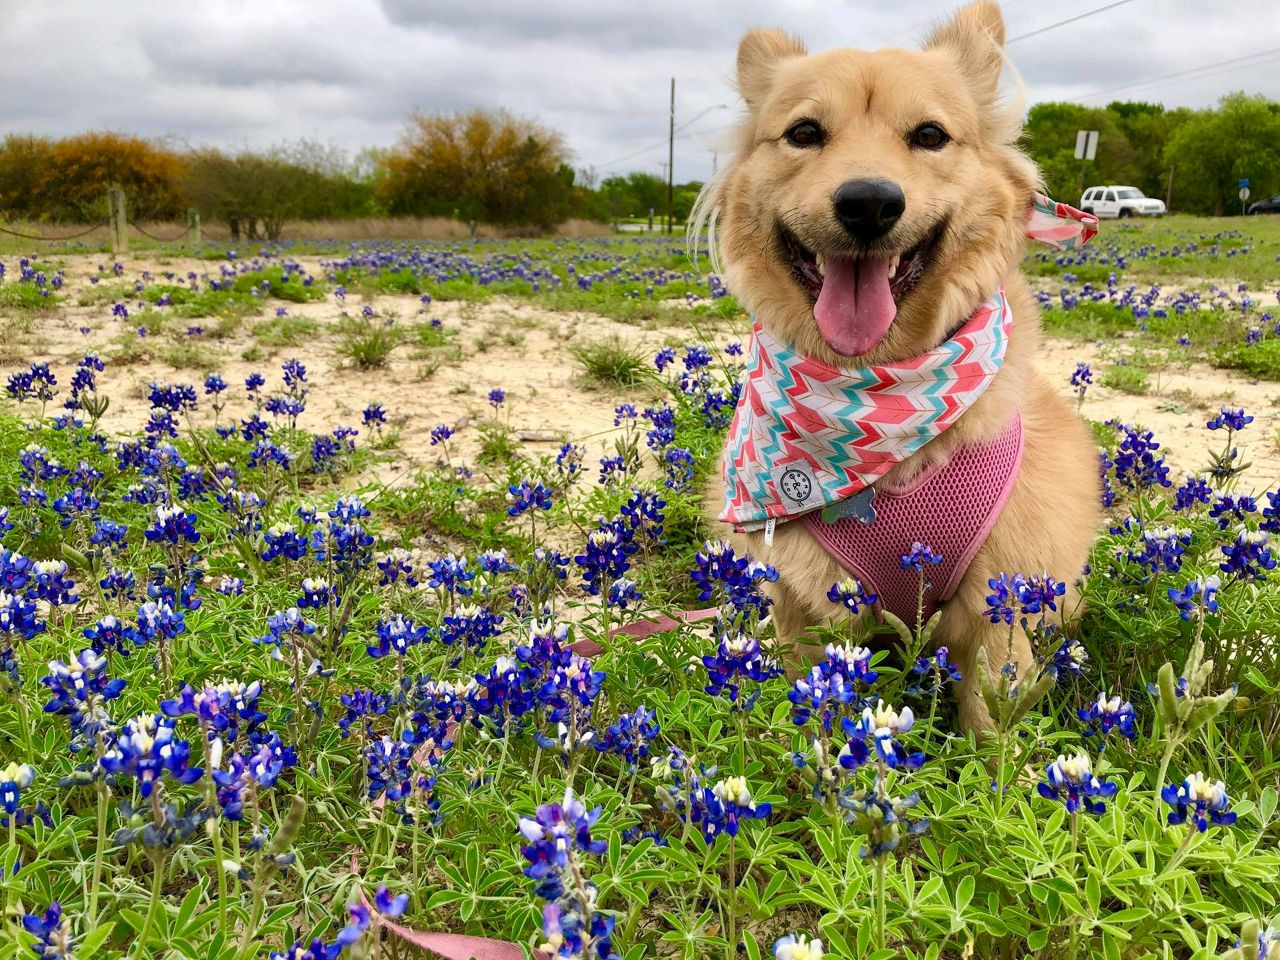 Reporter Alese Underwood's pup Foxy preciously poses with the bluebonnets.